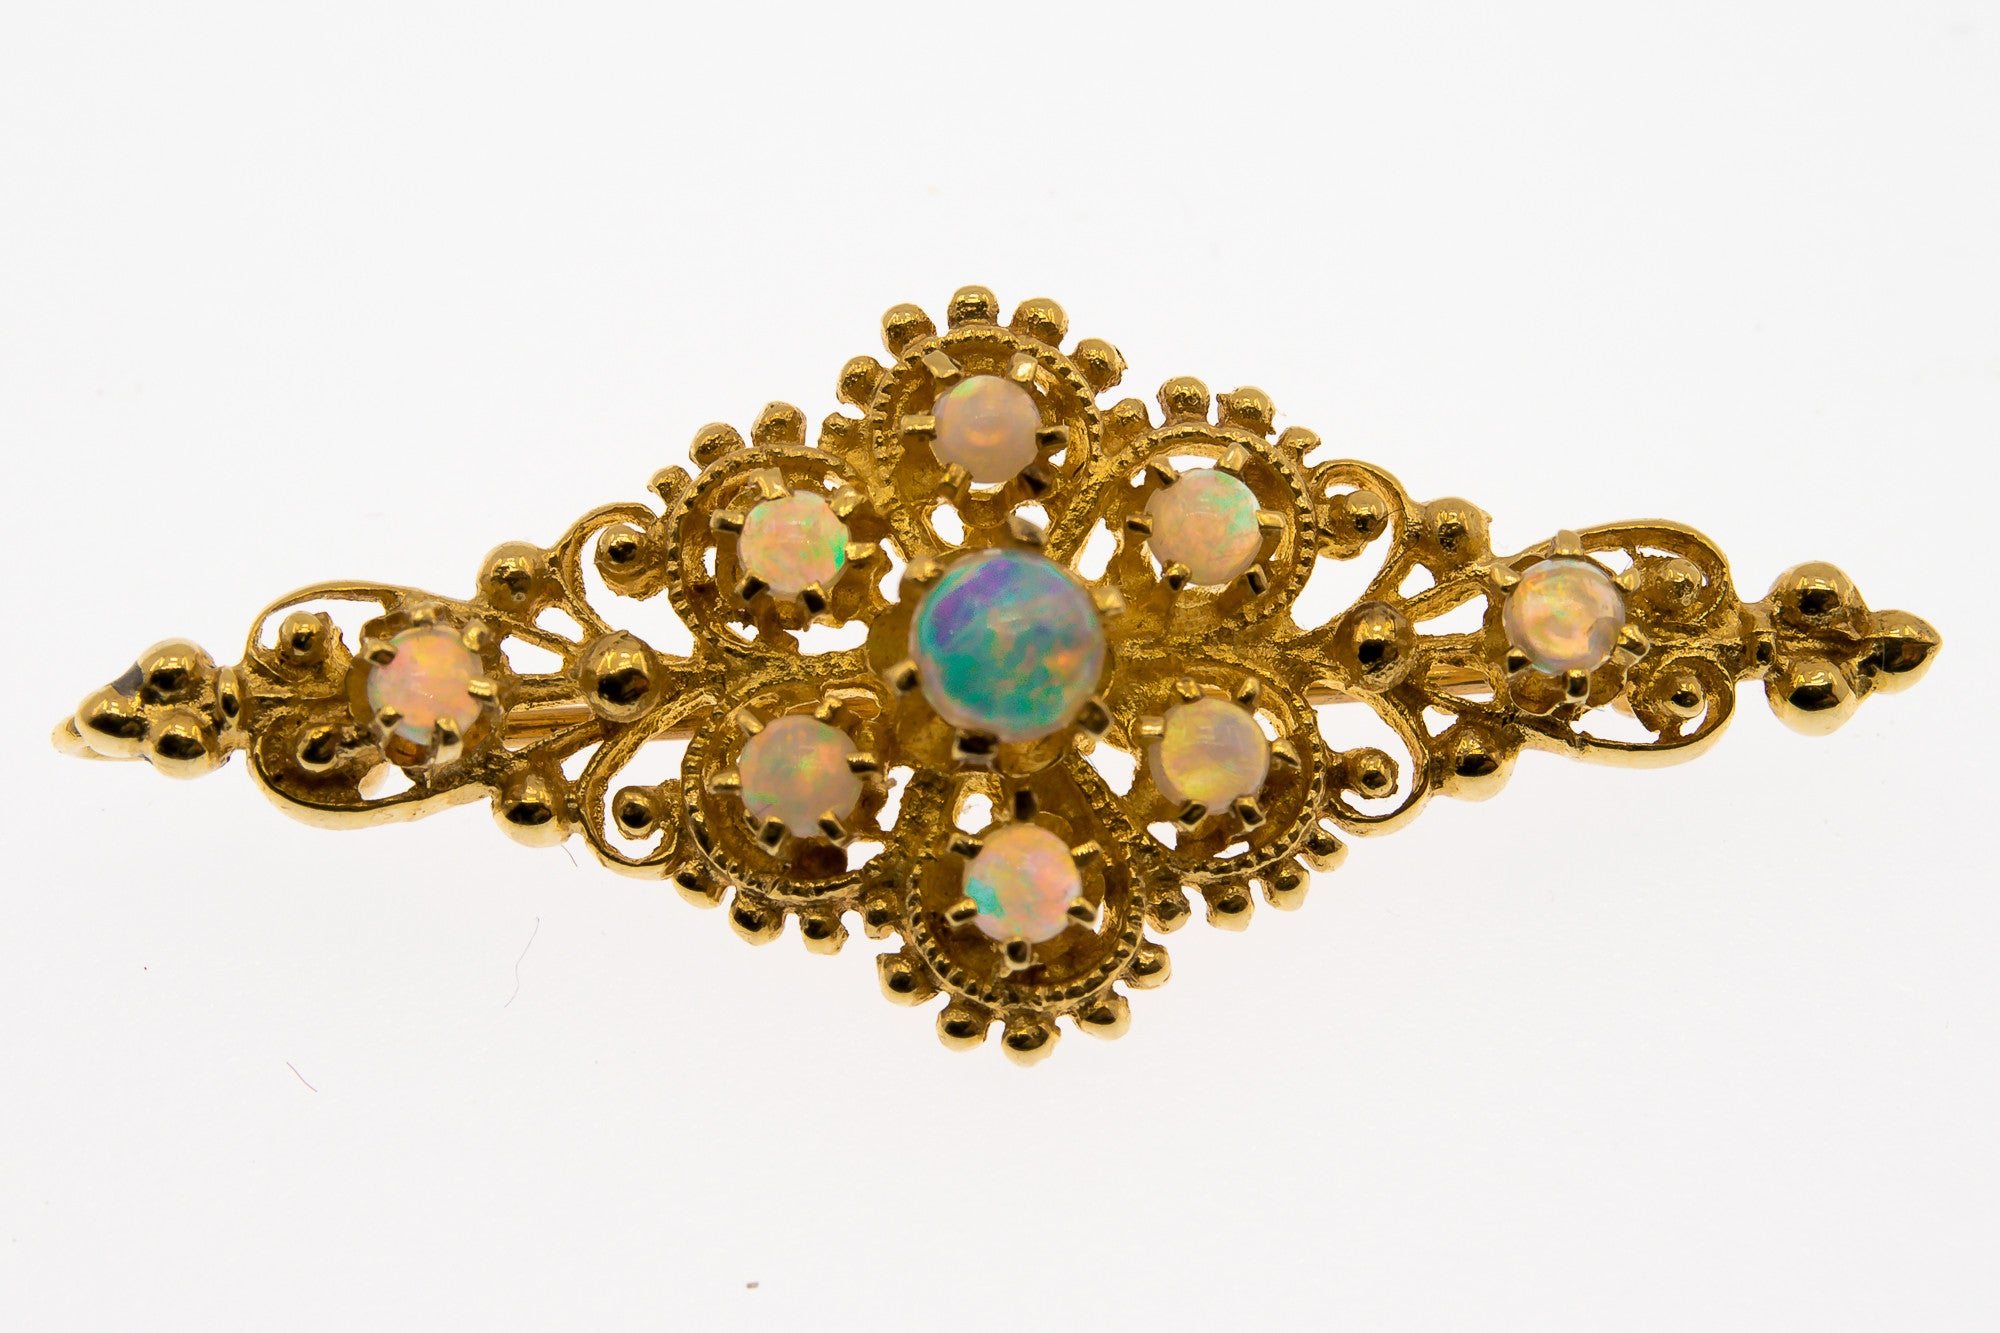 brooches for art set sale in large jewelry deco master v brooch gold opal id diamonds surrounded by pendant